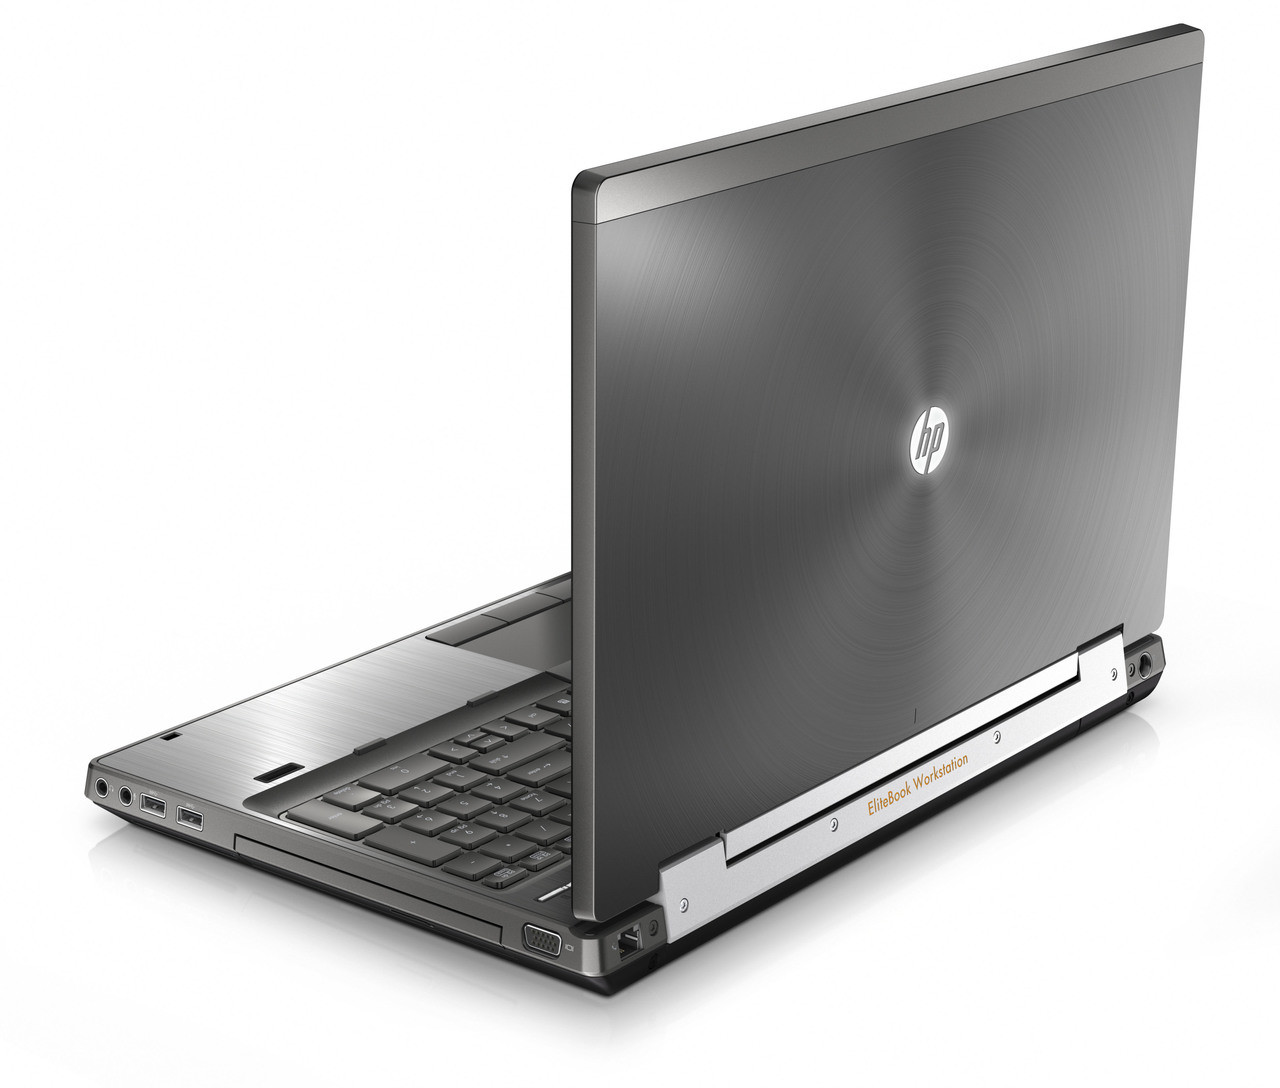 HP Compaq Elitebook 8560w Laptop Core i5 2.50GHz, 4GB Ram, 250GB HDD, DVD-RW, Notebook Windows 7 Pro 64 Notebook